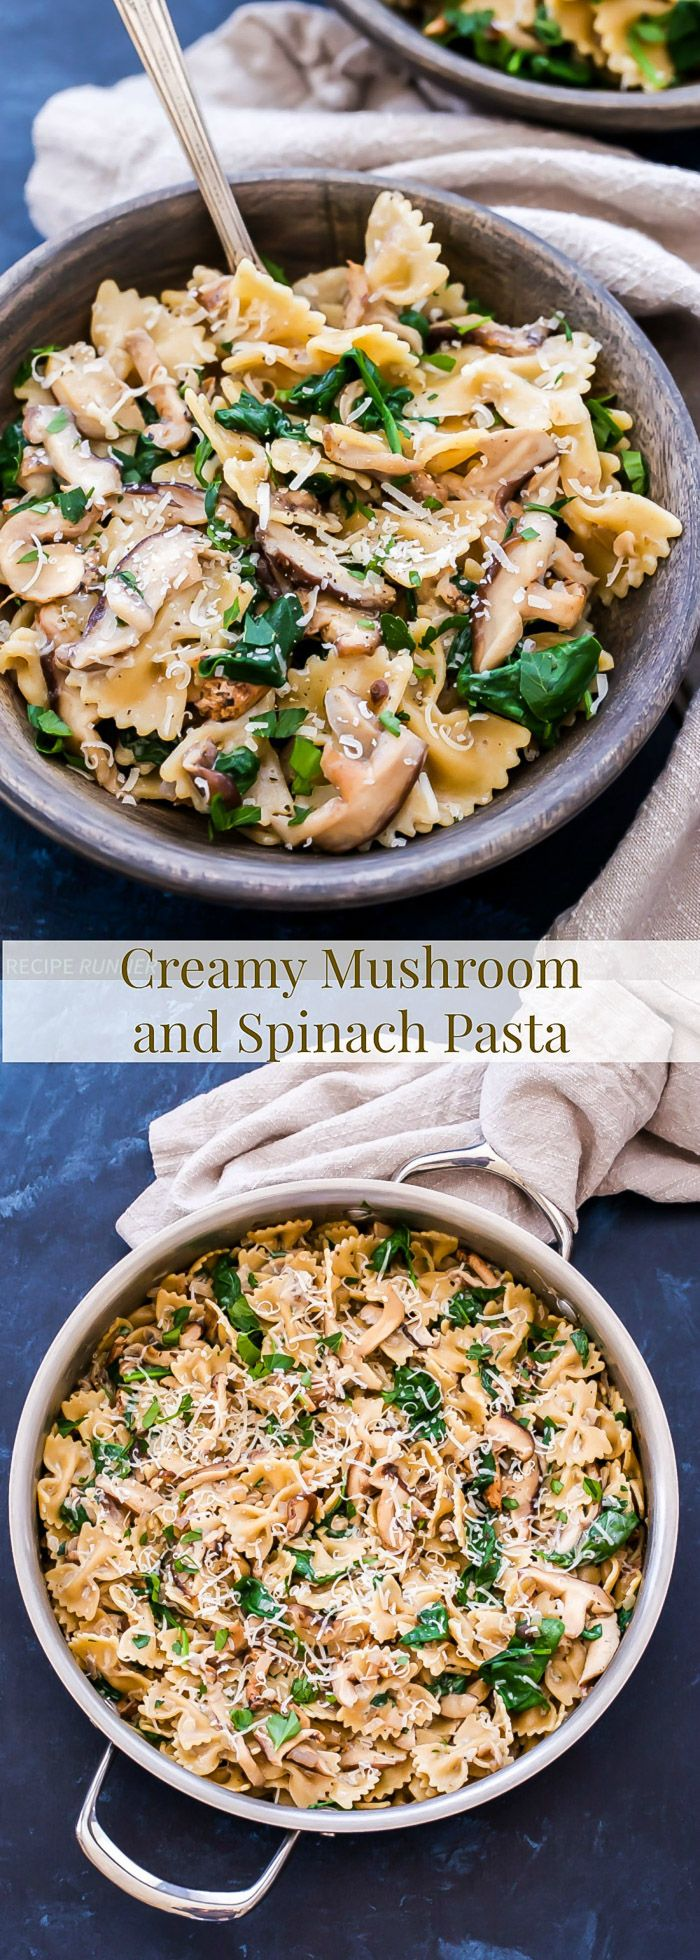 Creamy Mushroom and Spinach Pasta is an easy, but elegant vegetarian pasta dish. Hearty mushrooms and whole wheat pasta make it a filling main dish without any meat! | www.reciperunner.com